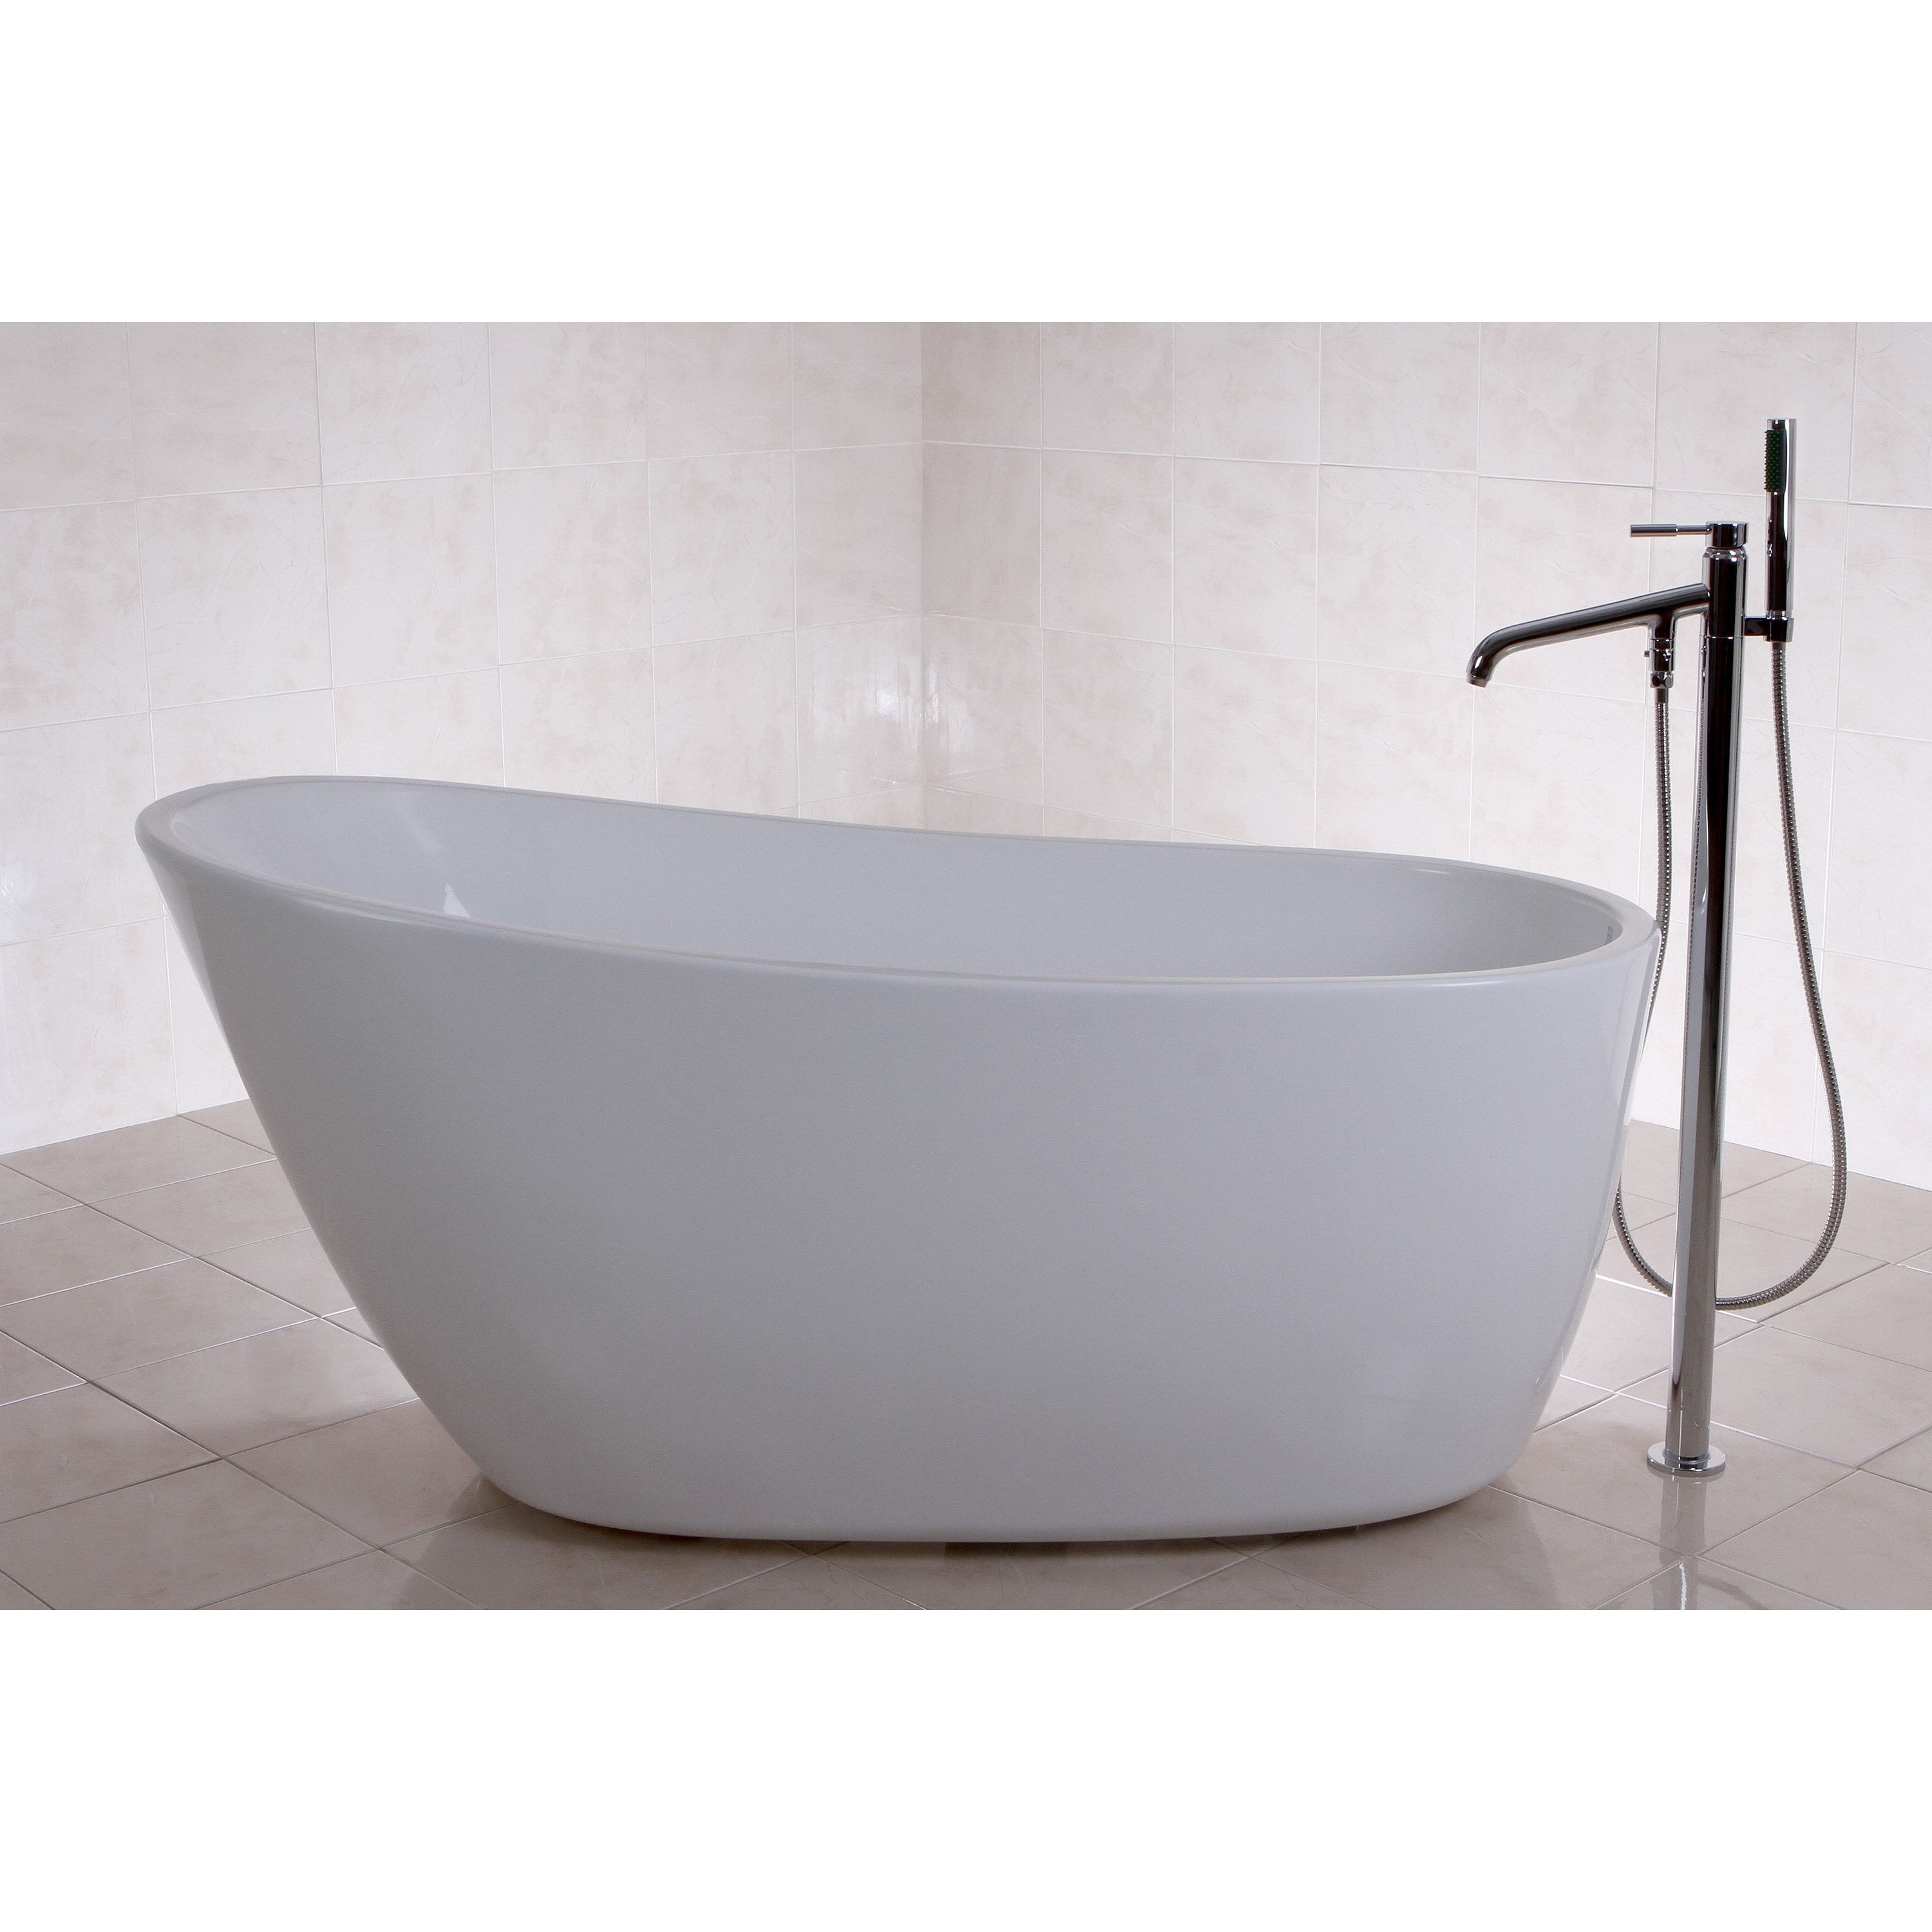 azzuri home drain marisol with shipping wyndham today garden product overstock free standing bathtubs bathtub soaking tub acrylic up pop rear and overflow